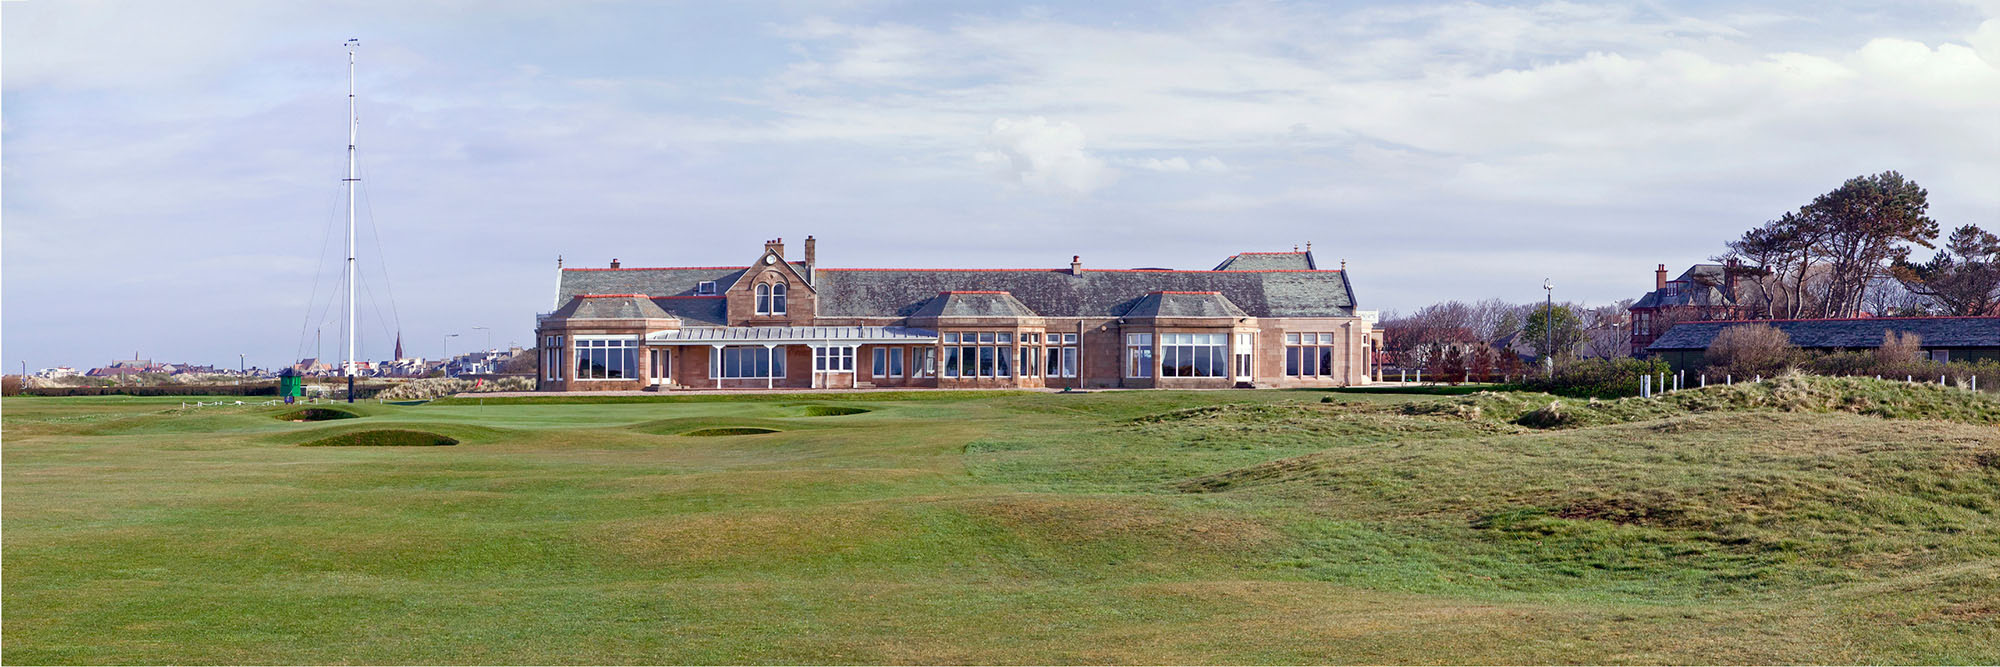 Golf Course Image - Royal Troon Golf Club No. 18